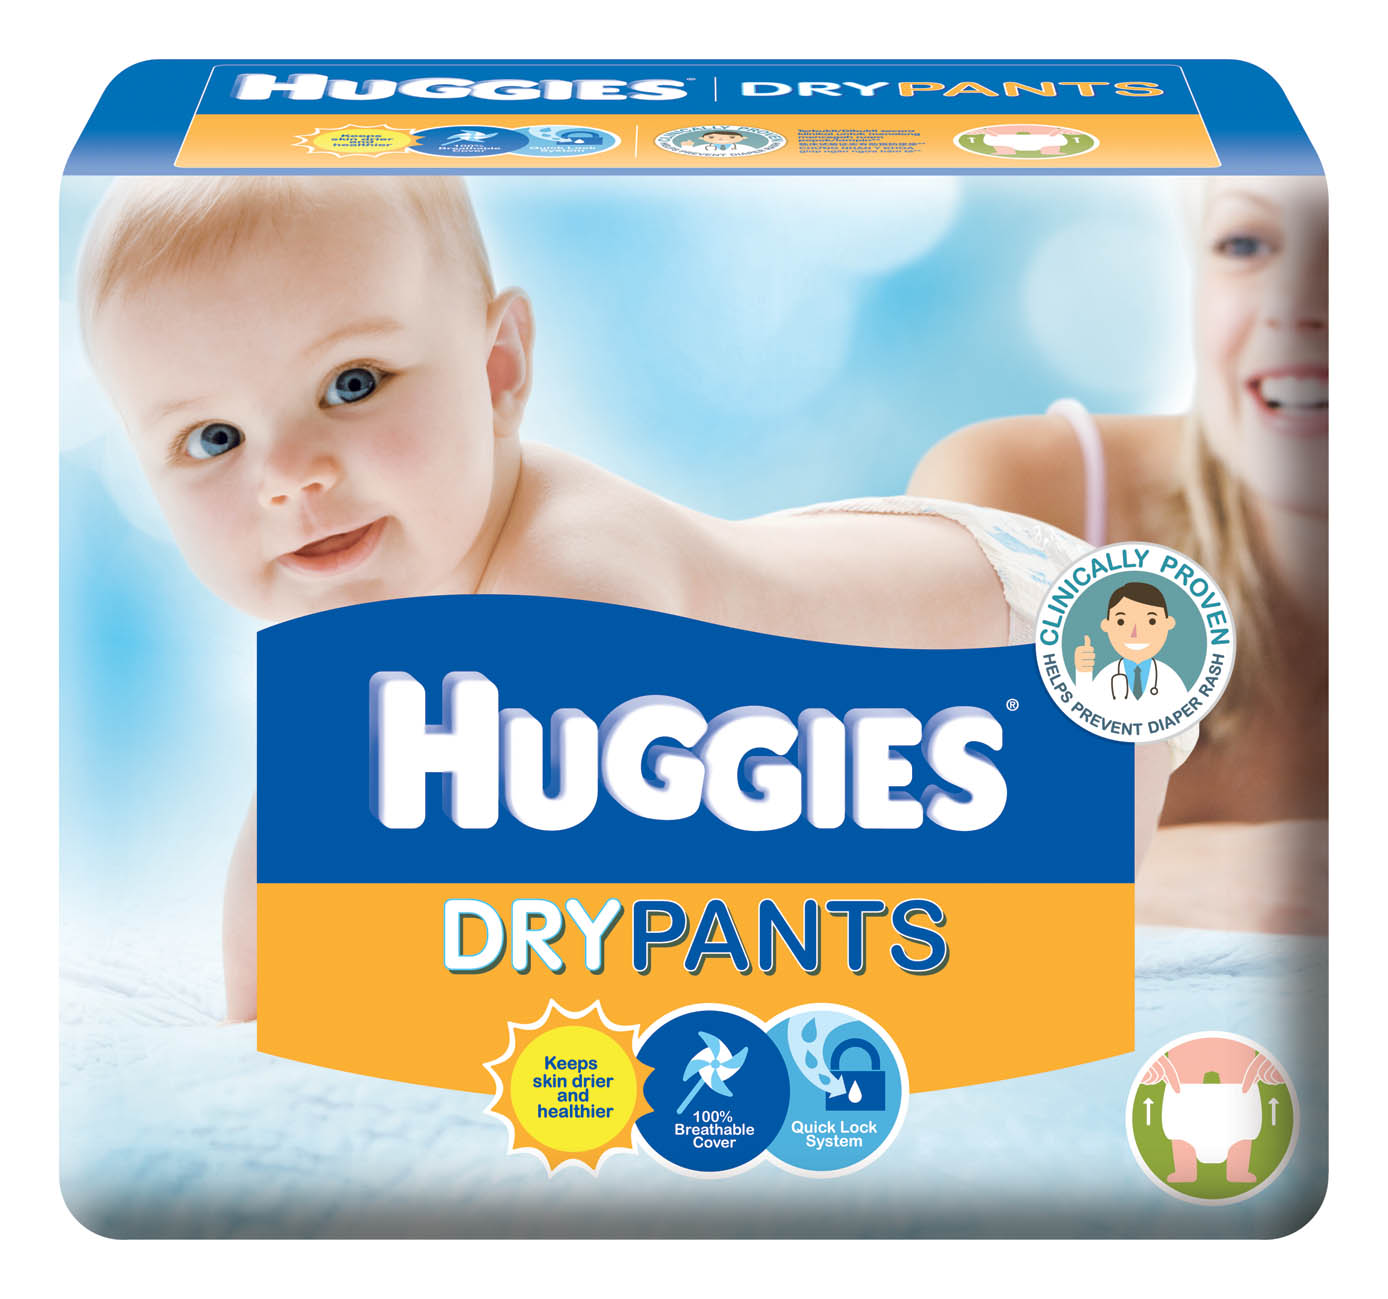 HUGGIES Dry Pants 'Change For Better Cconvenience' Roadshow!